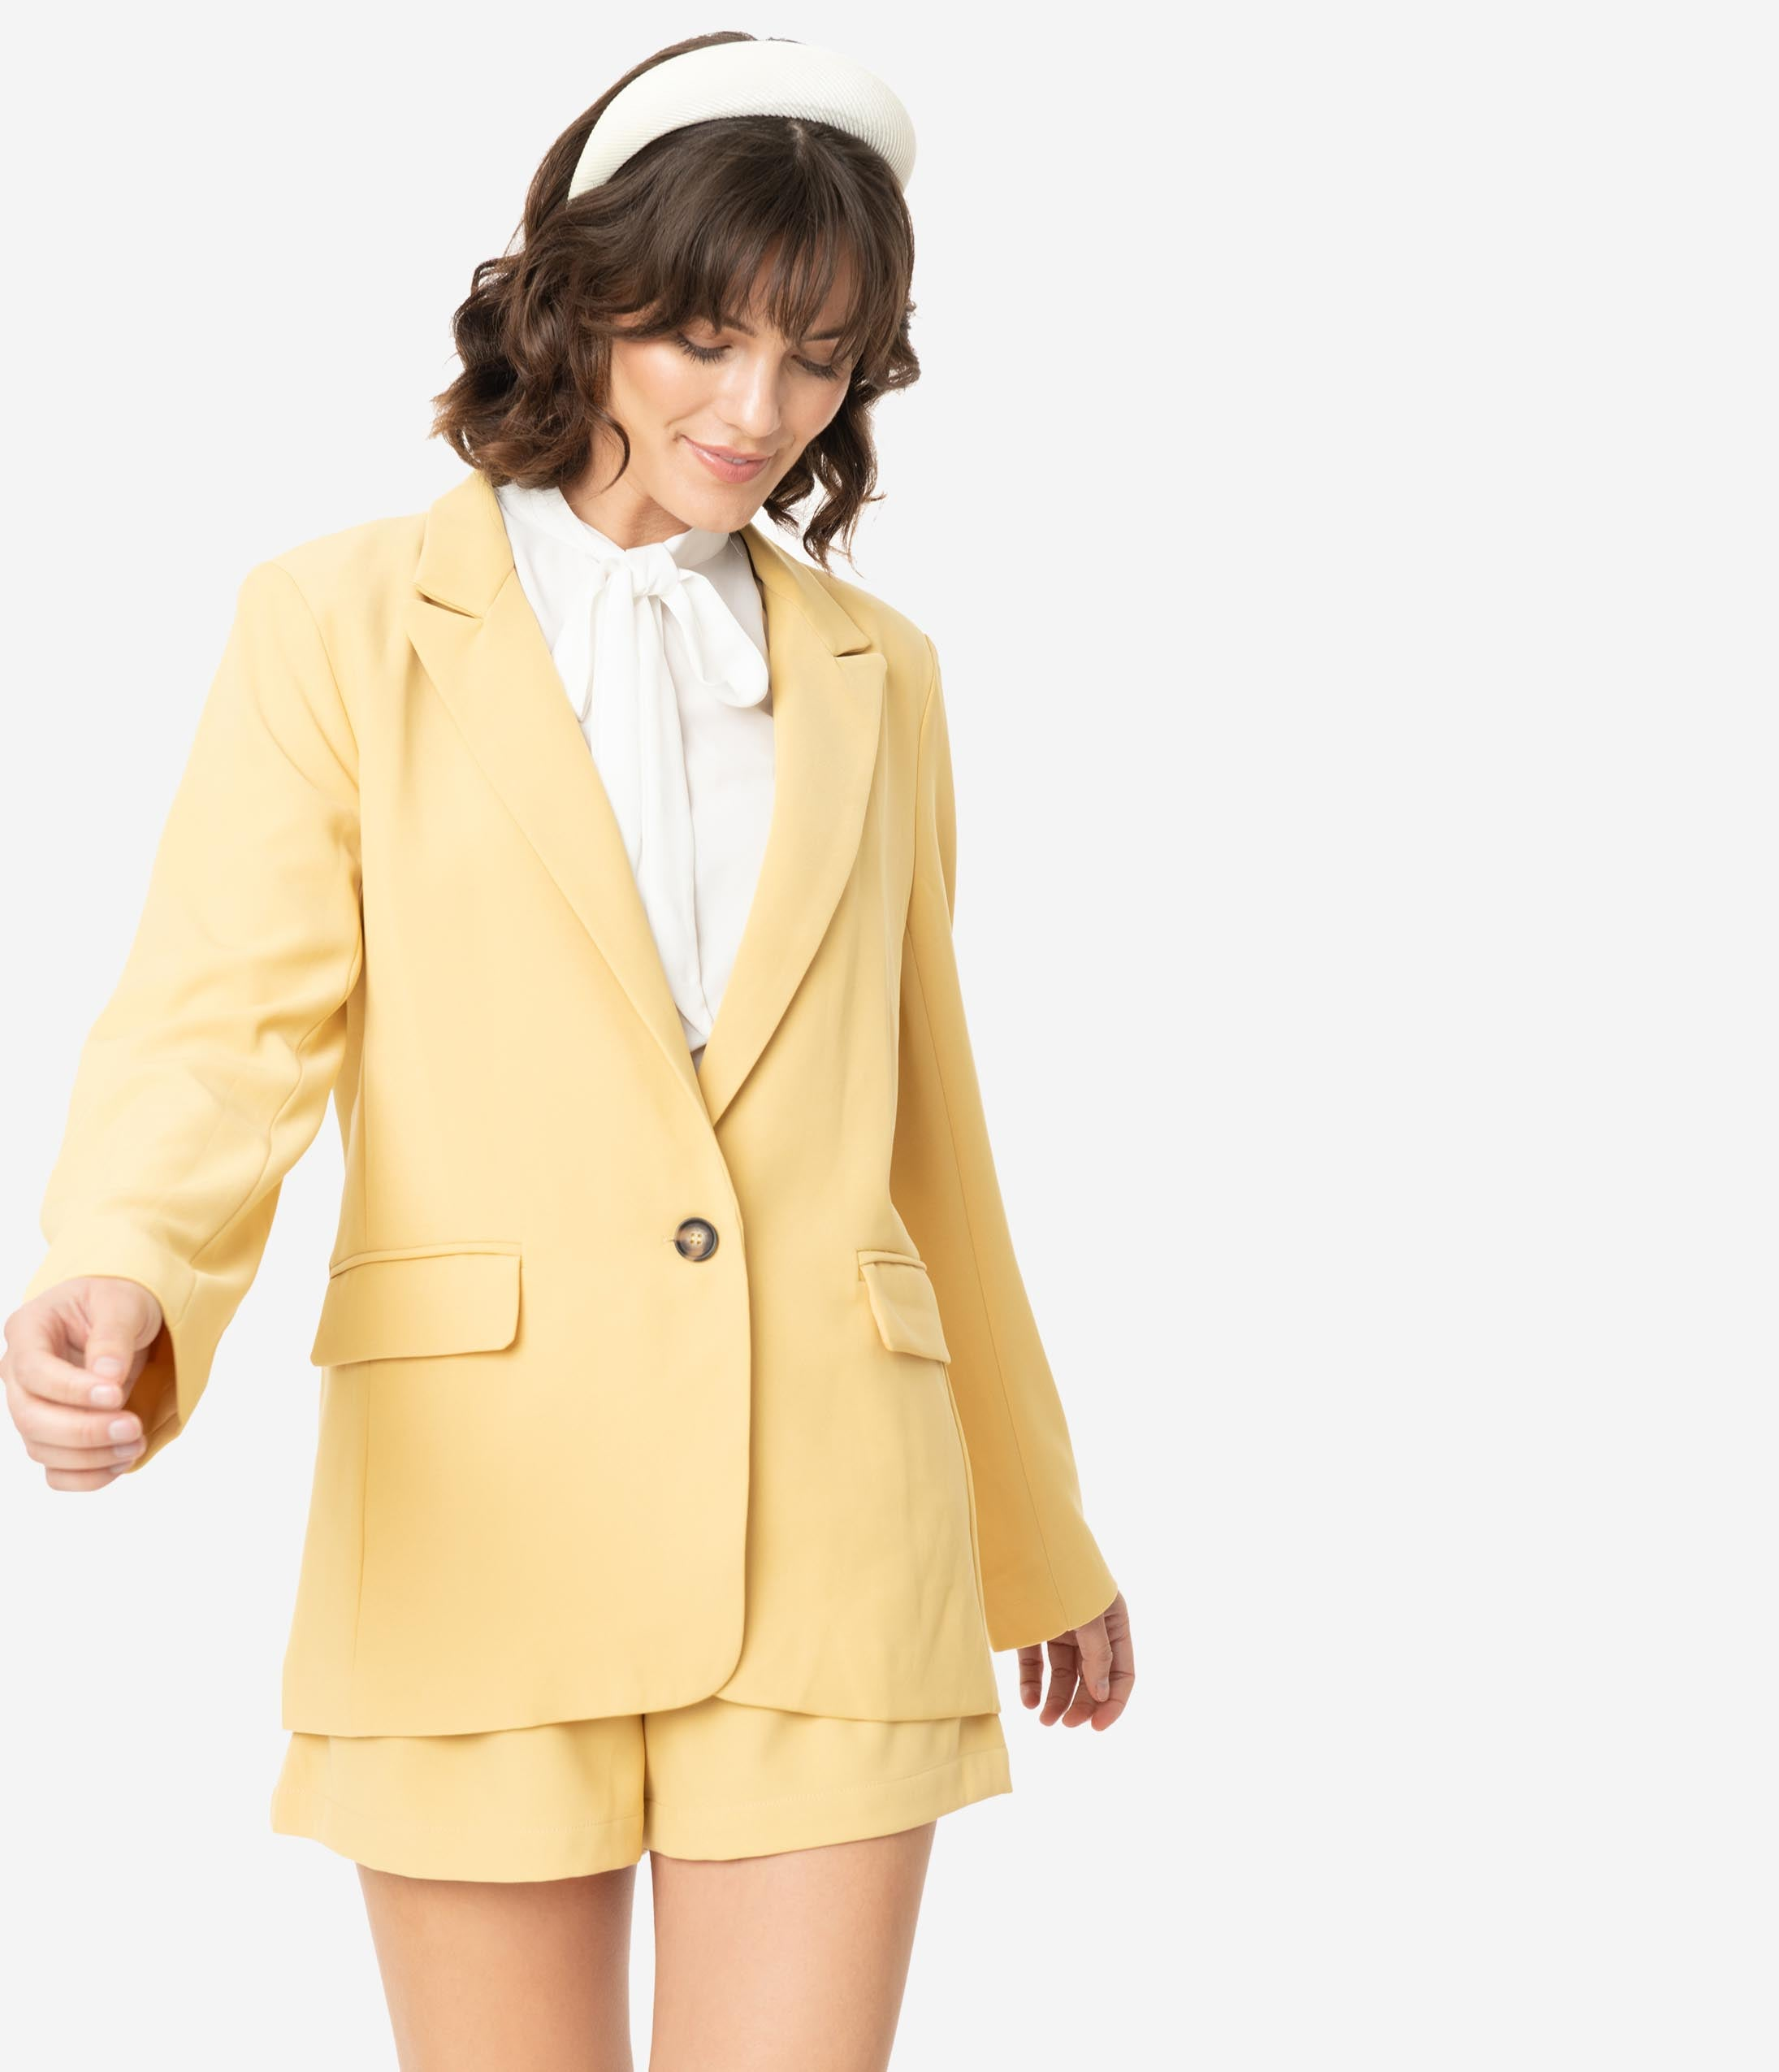 70s Jackets, Furs, Vests, Ponchos Light Yellow Long Sleeve Button Front Blazer $78.00 AT vintagedancer.com